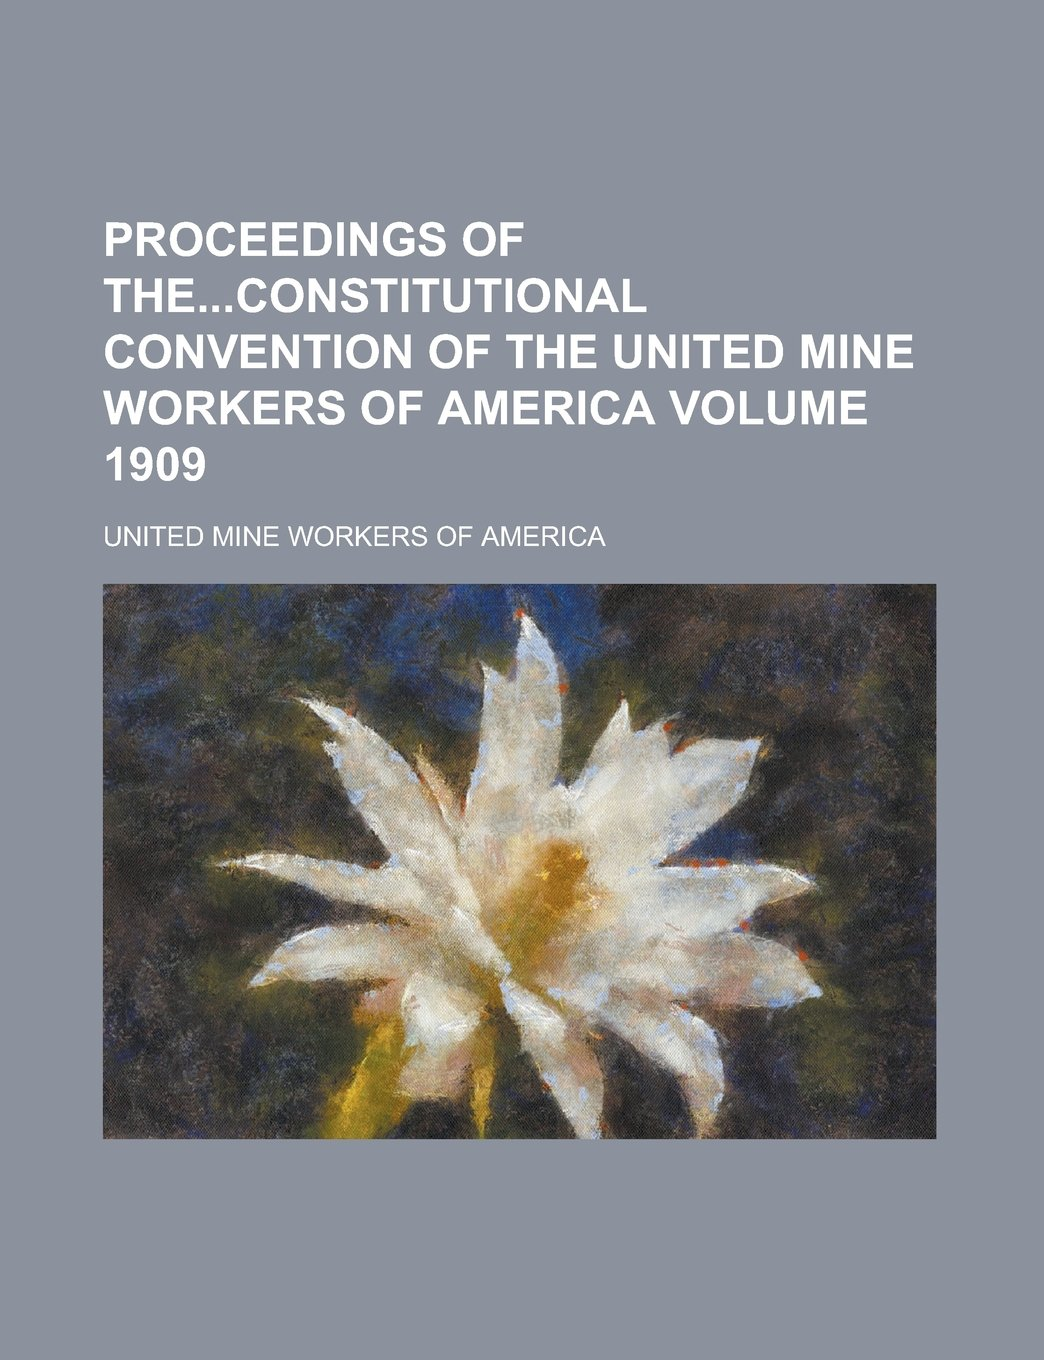 Download Proceedings of Theconstitutional Convention of the United Mine Workers of America Volume 1909 PDF